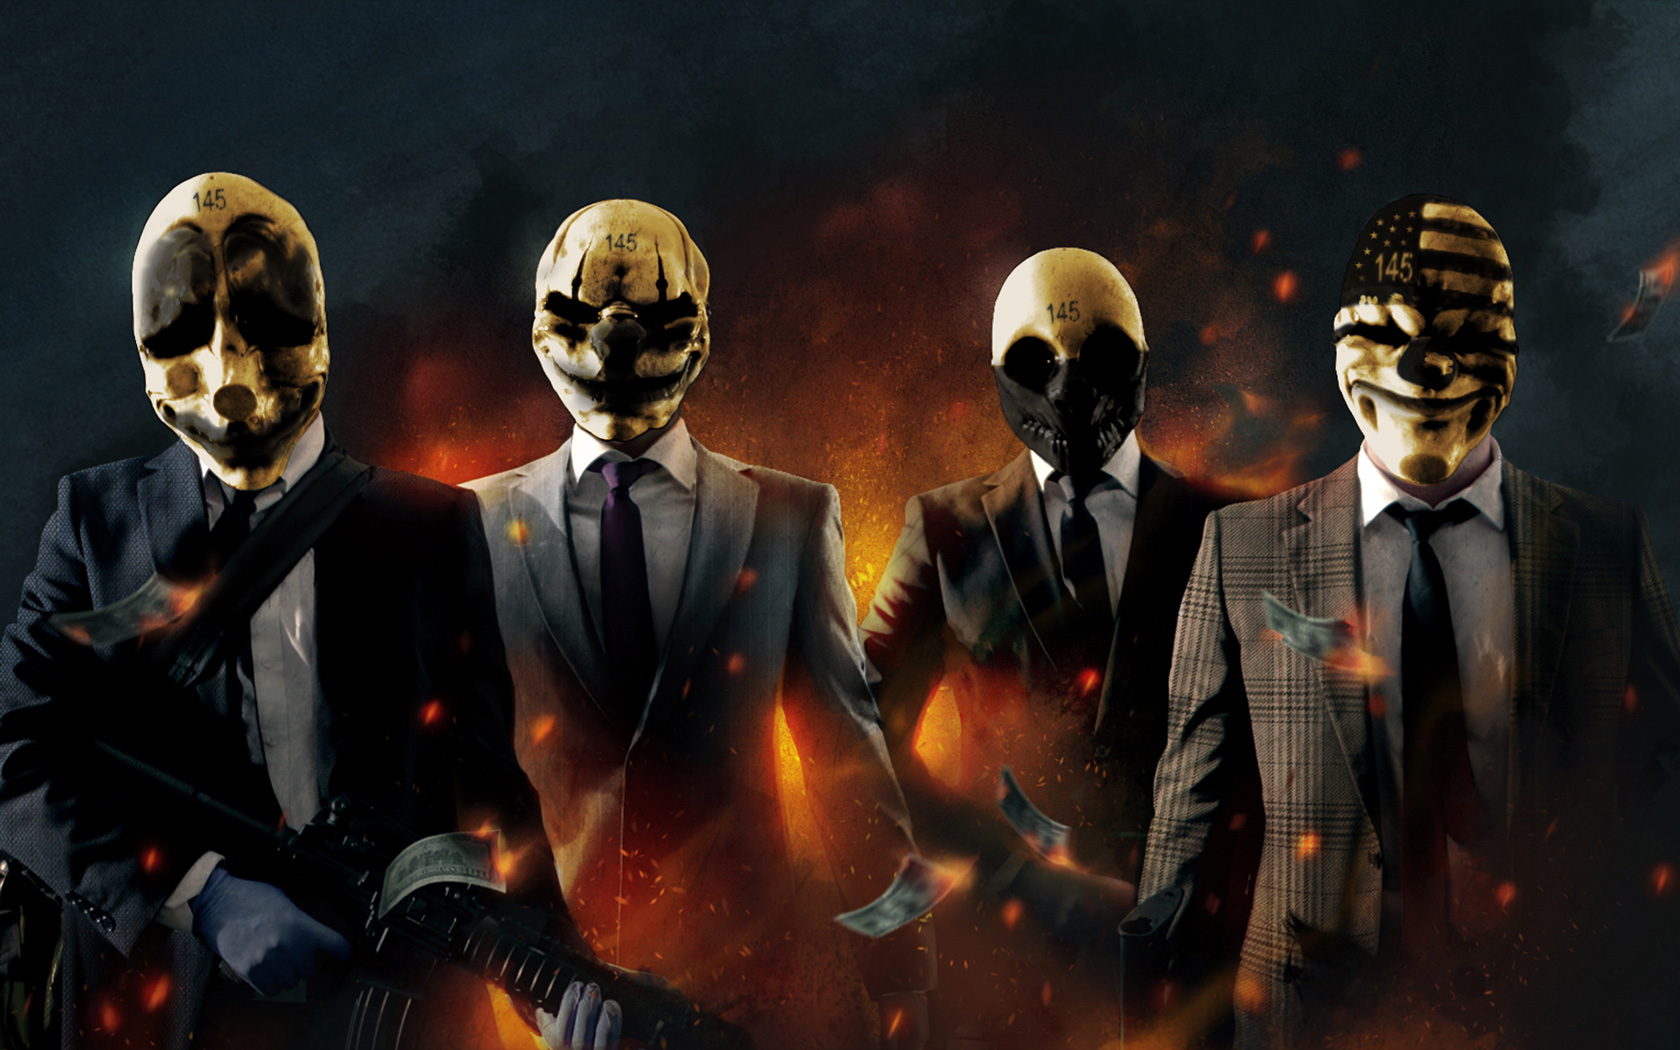 Free Payday: The Heist Wallpaper in 1680x1050